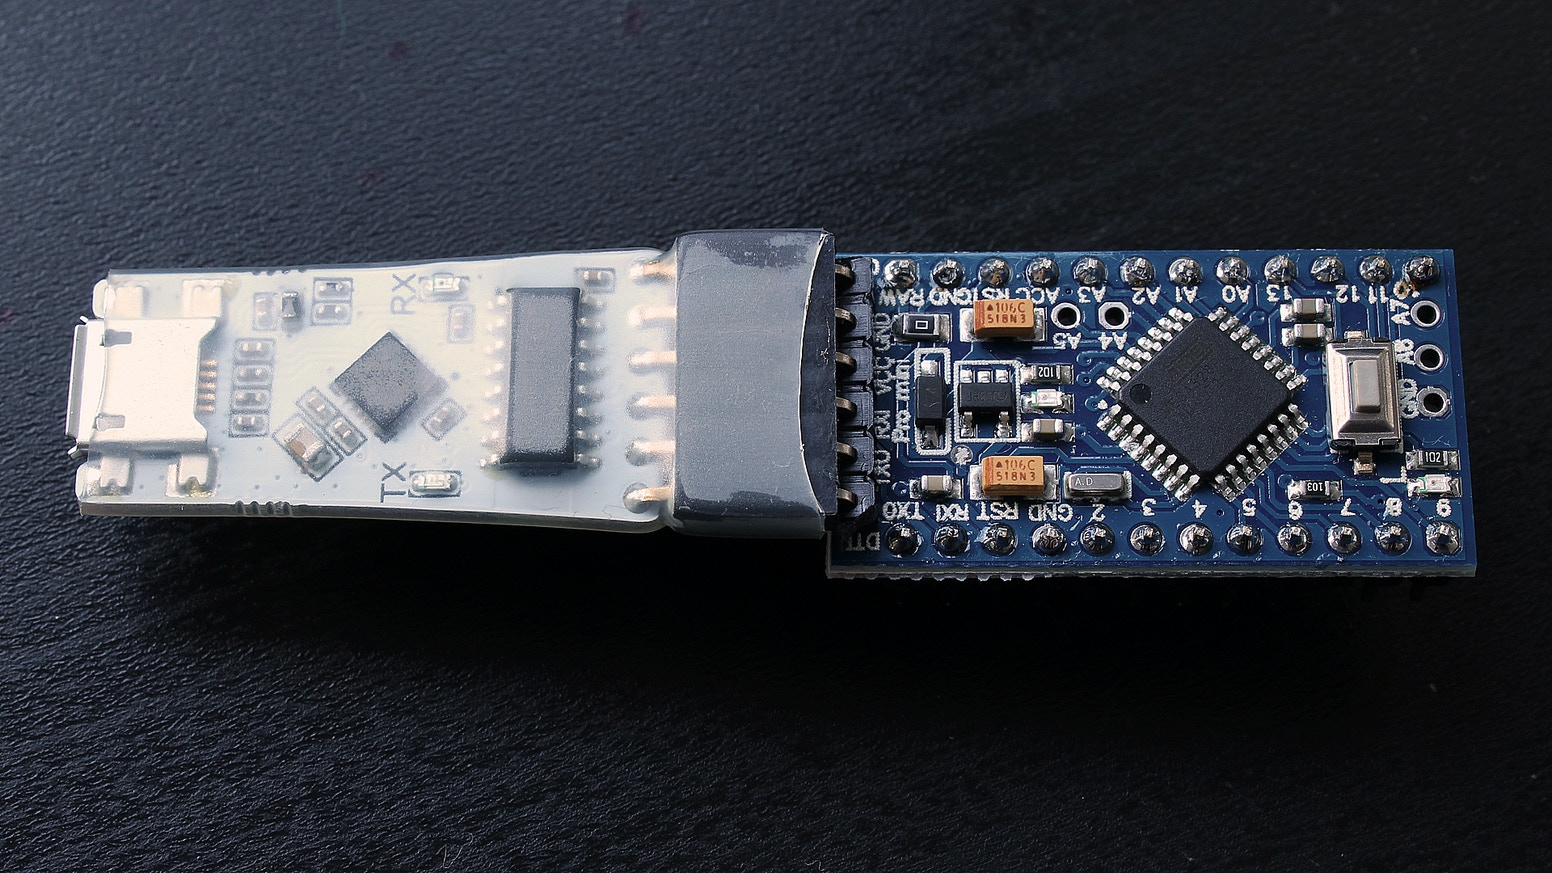 Isolated USB to UART Converter for Arduino pro mini by Simone